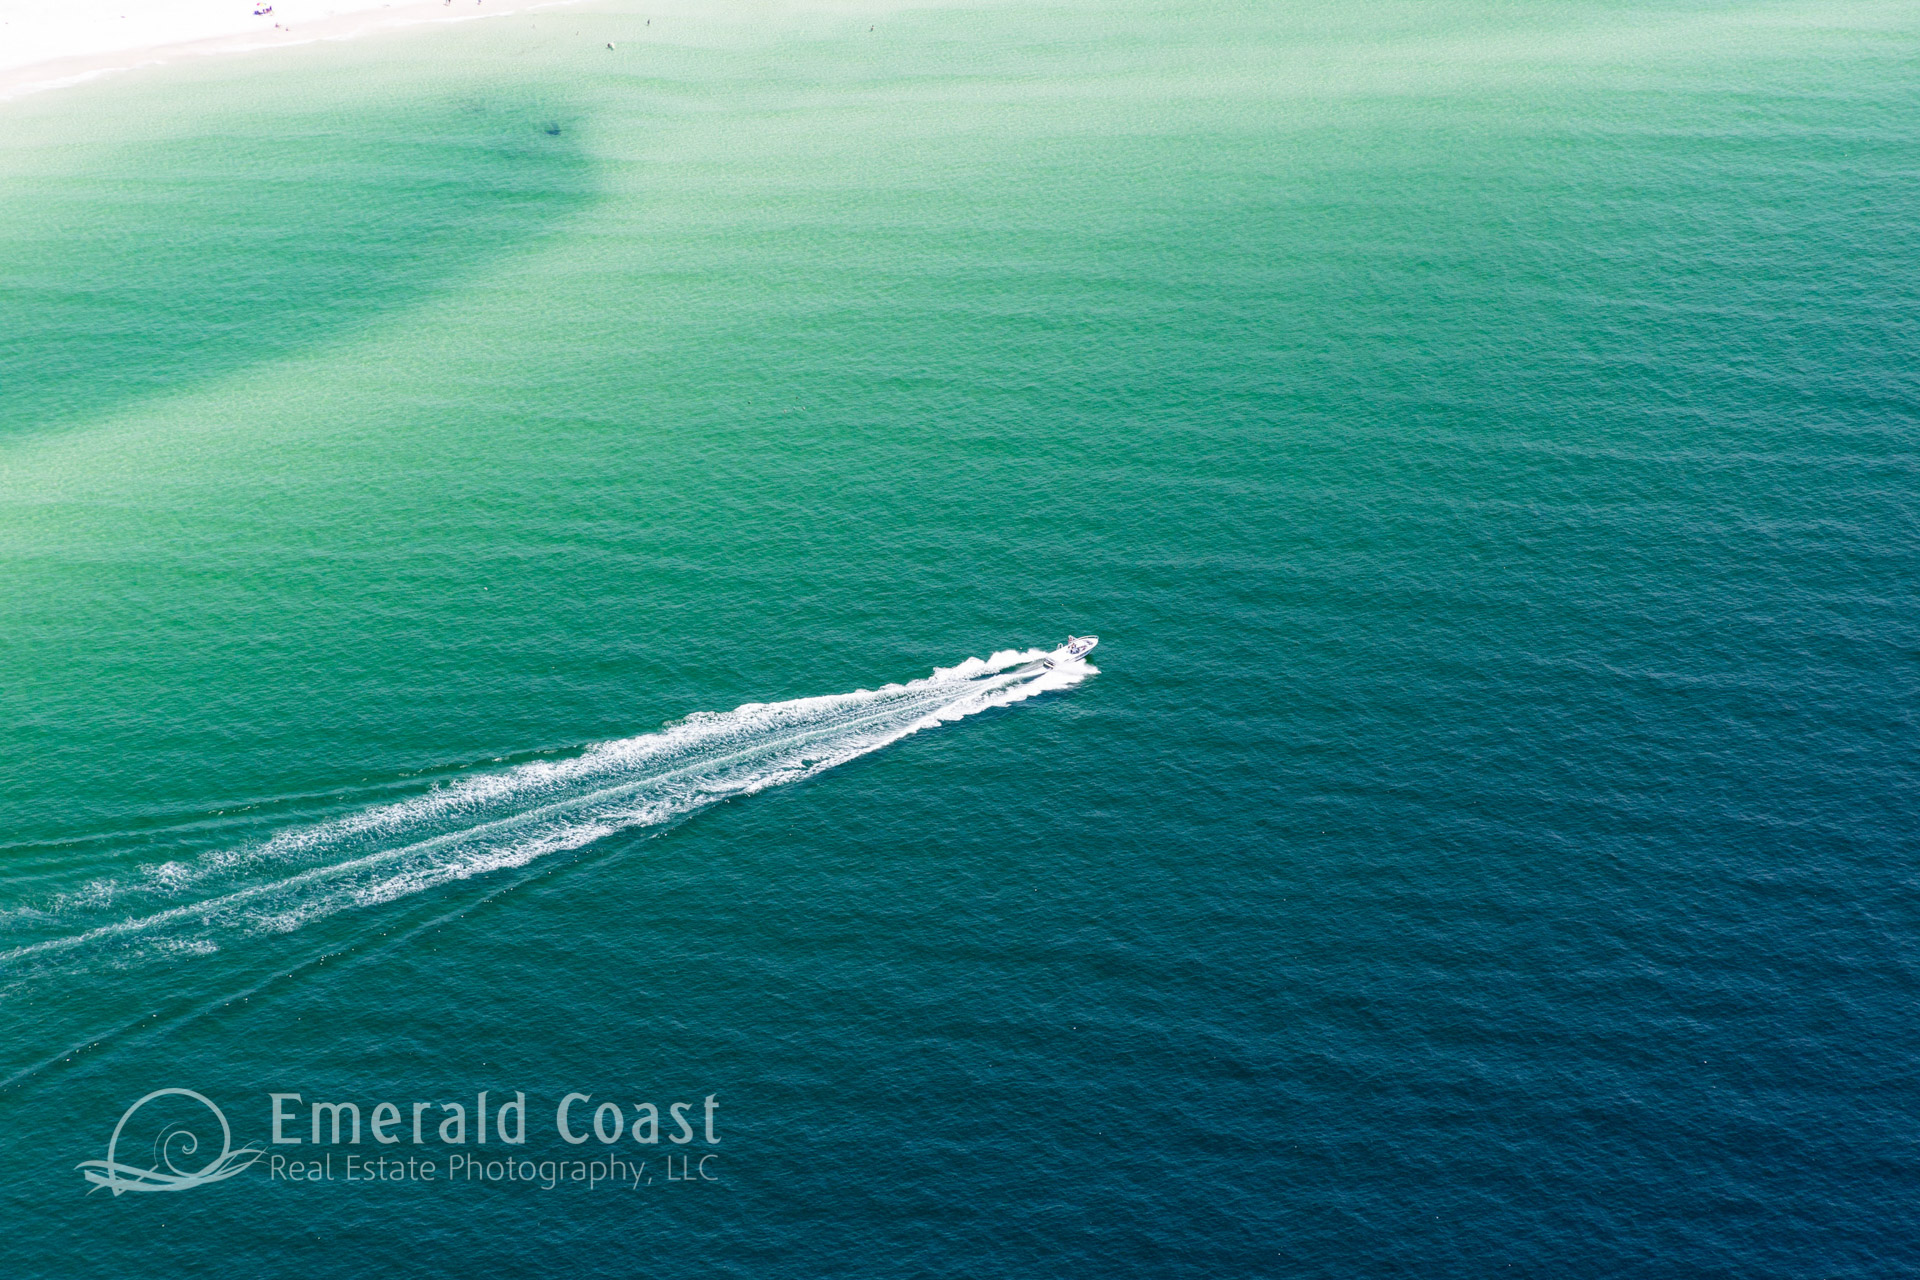 Blue Green Water, Gulf of Mexico, Boat, Aerial Photograph